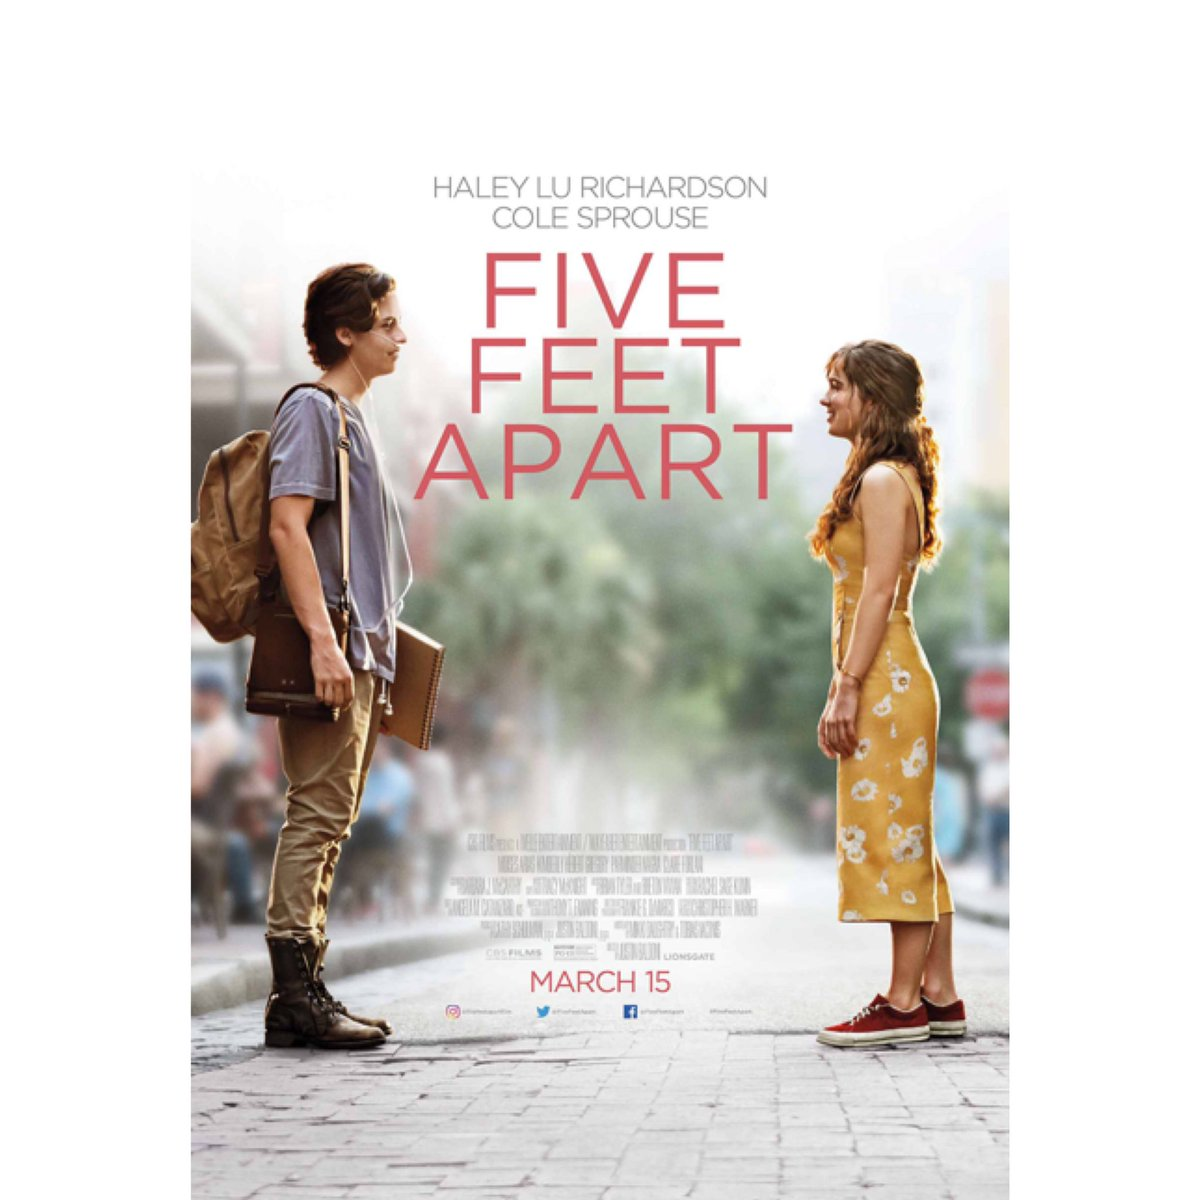 Go see this movie. Bring tissues. Don't wear mascara. Get some sour patch kids. #fivefeetapart